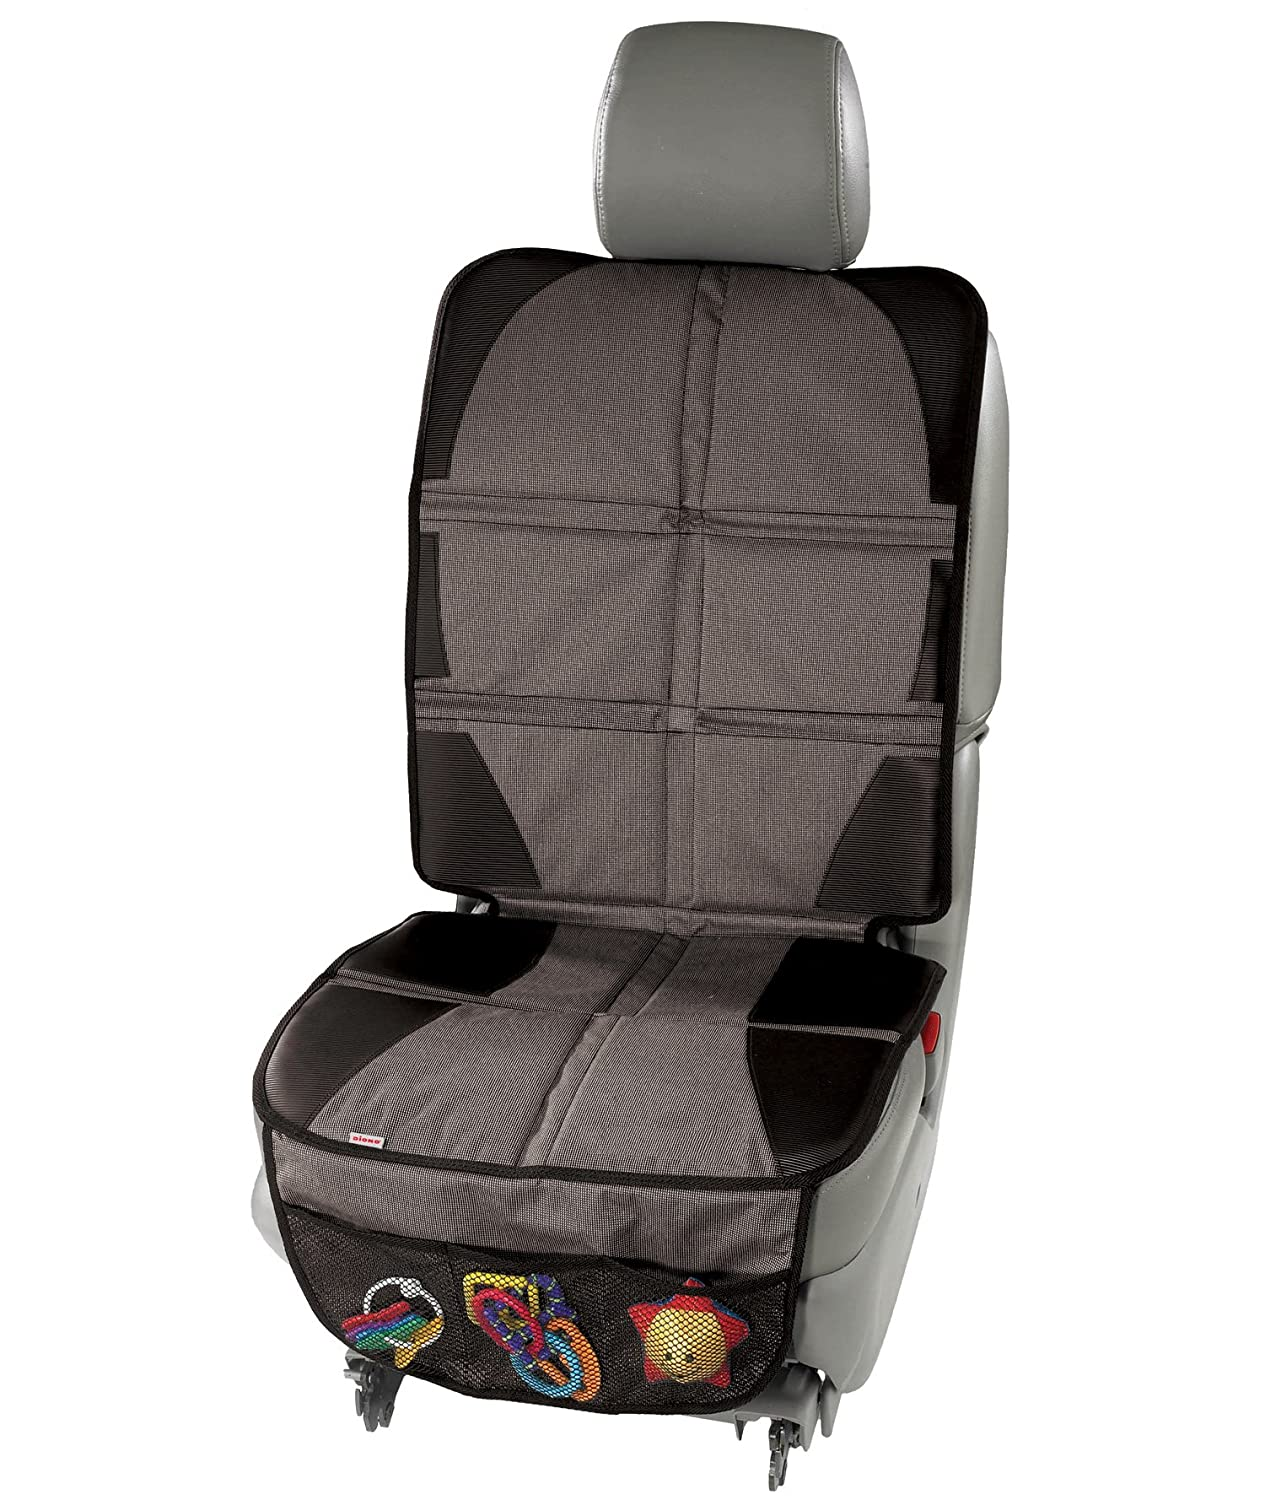 diono ultra mat car seat protector diono amazoncouk baby